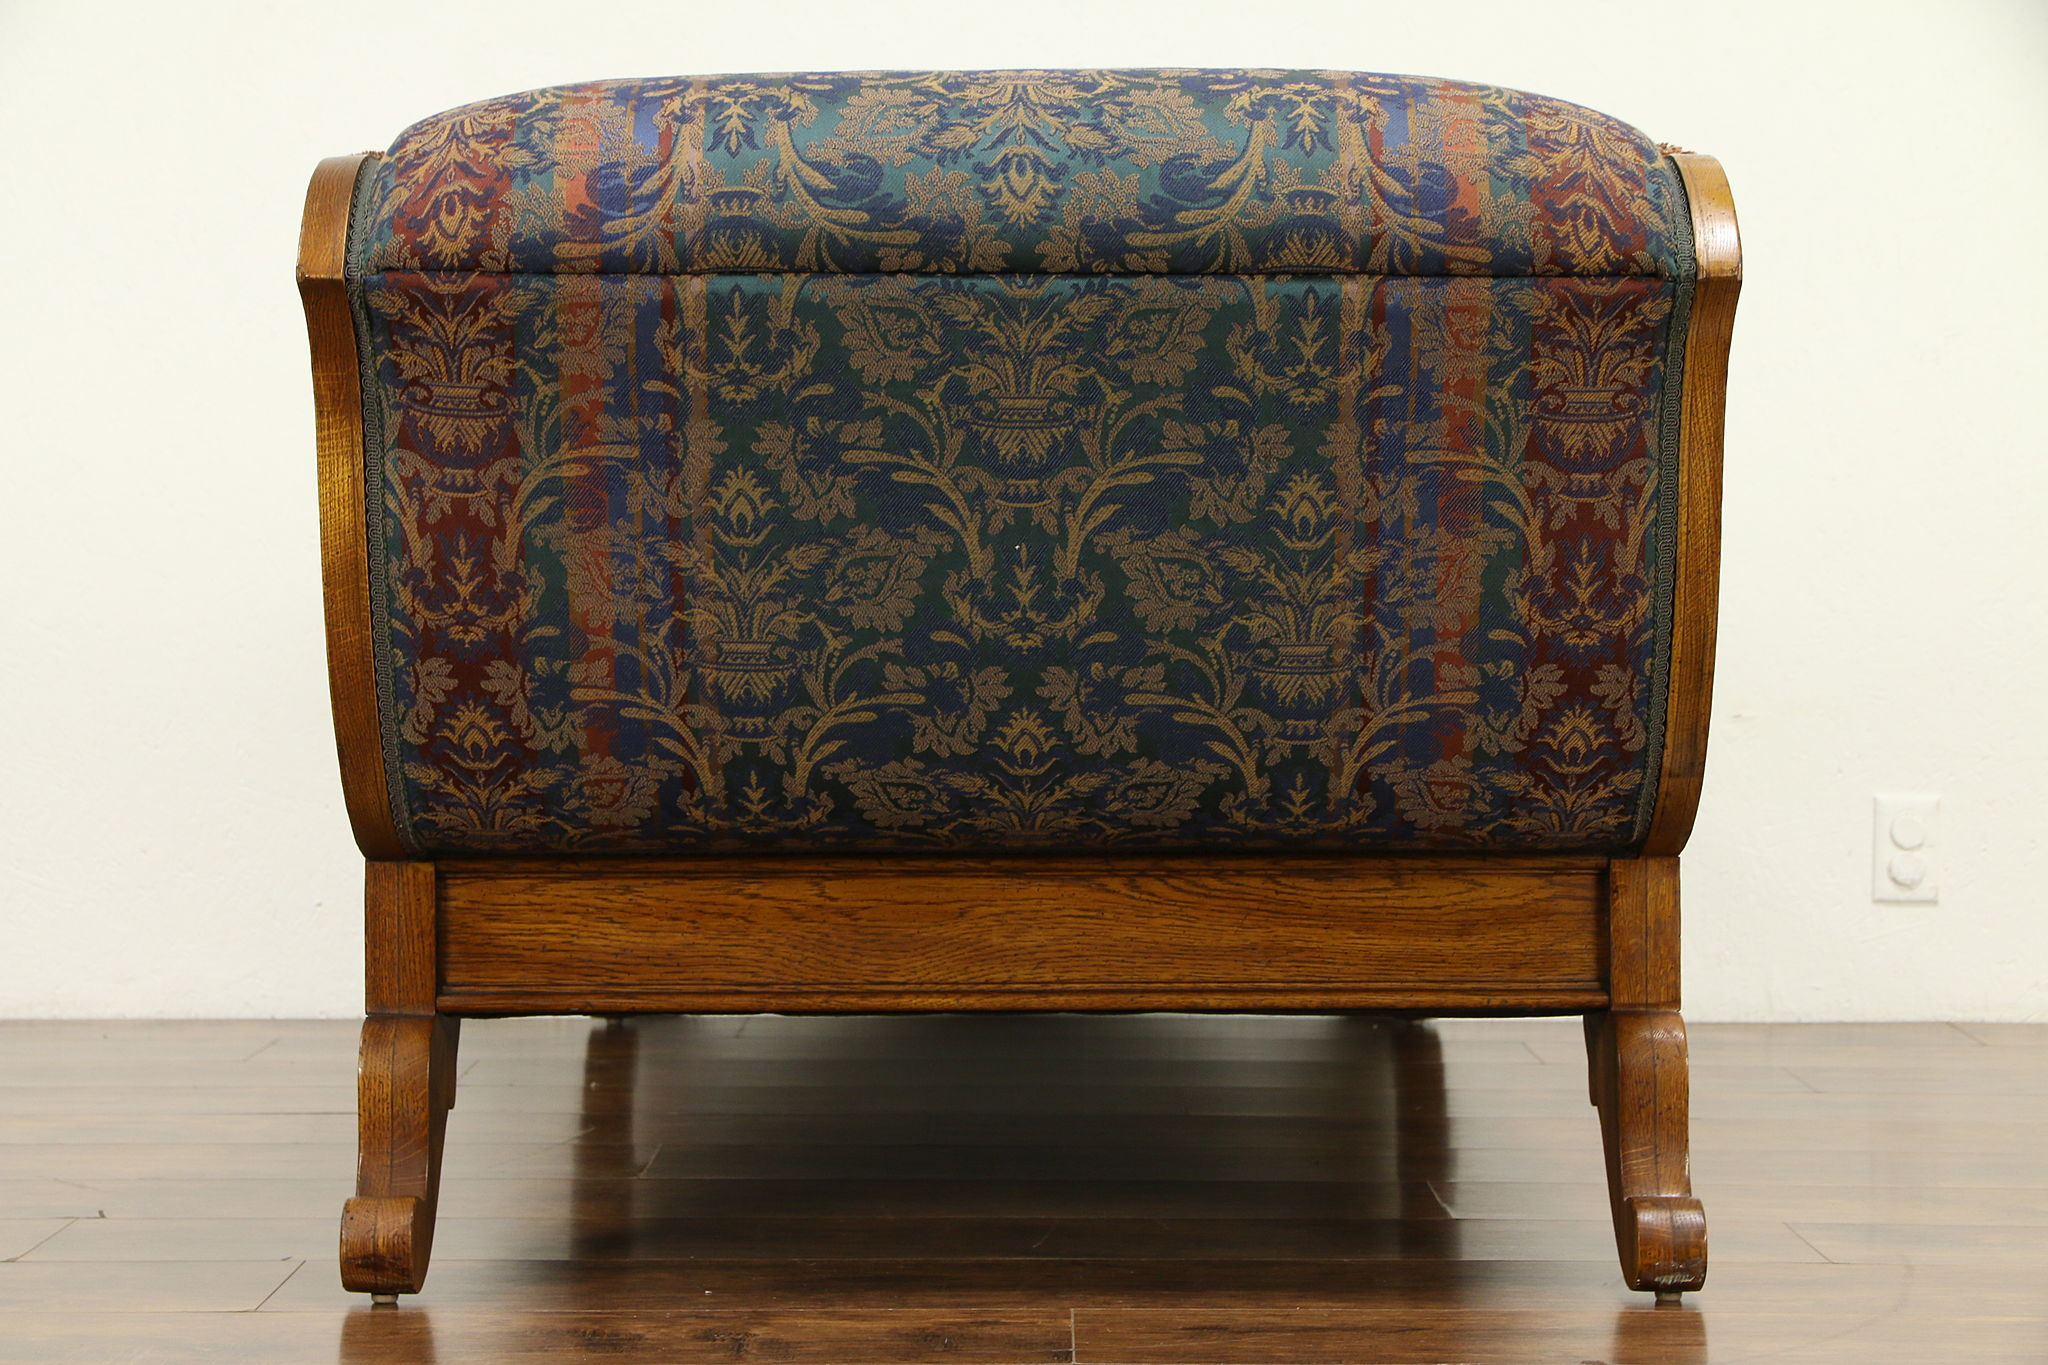 Admirable Victorian Style Vintage Oak Chaise Lounge Day Bed Fainting Couch Pulaski 32275 Dailytribune Chair Design For Home Dailytribuneorg